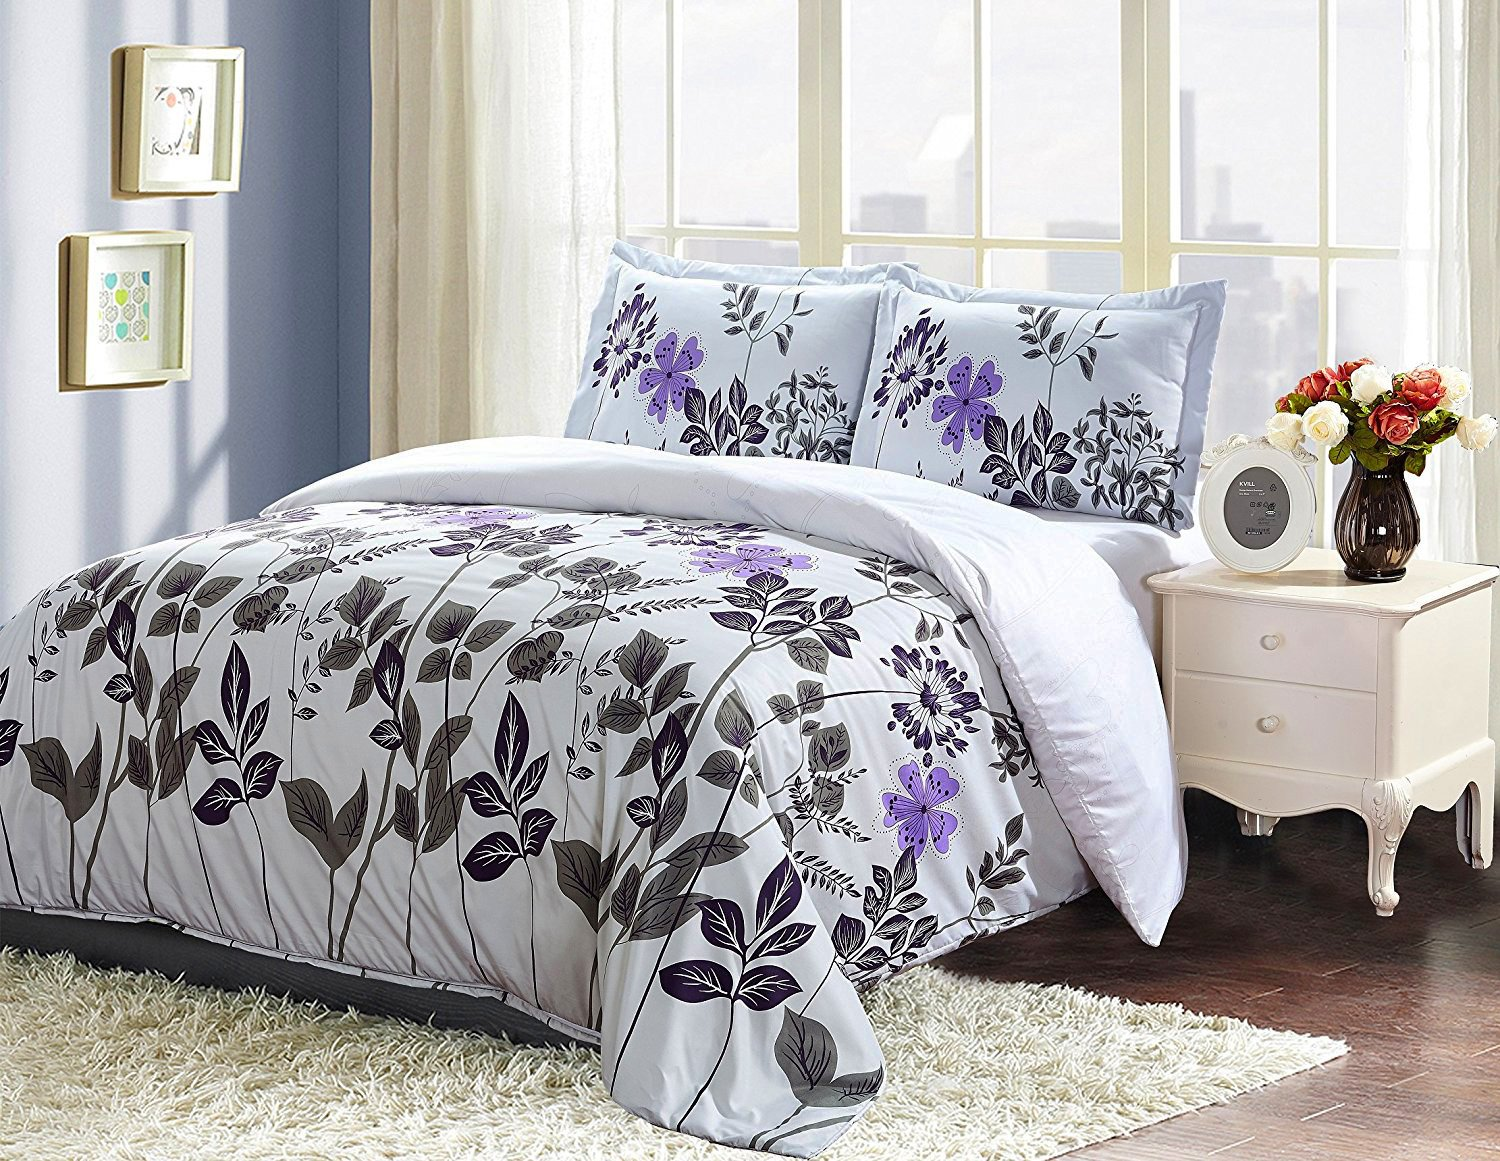 Floral Design Duvet Cover Set King, Light Grey Brushed Microfiber